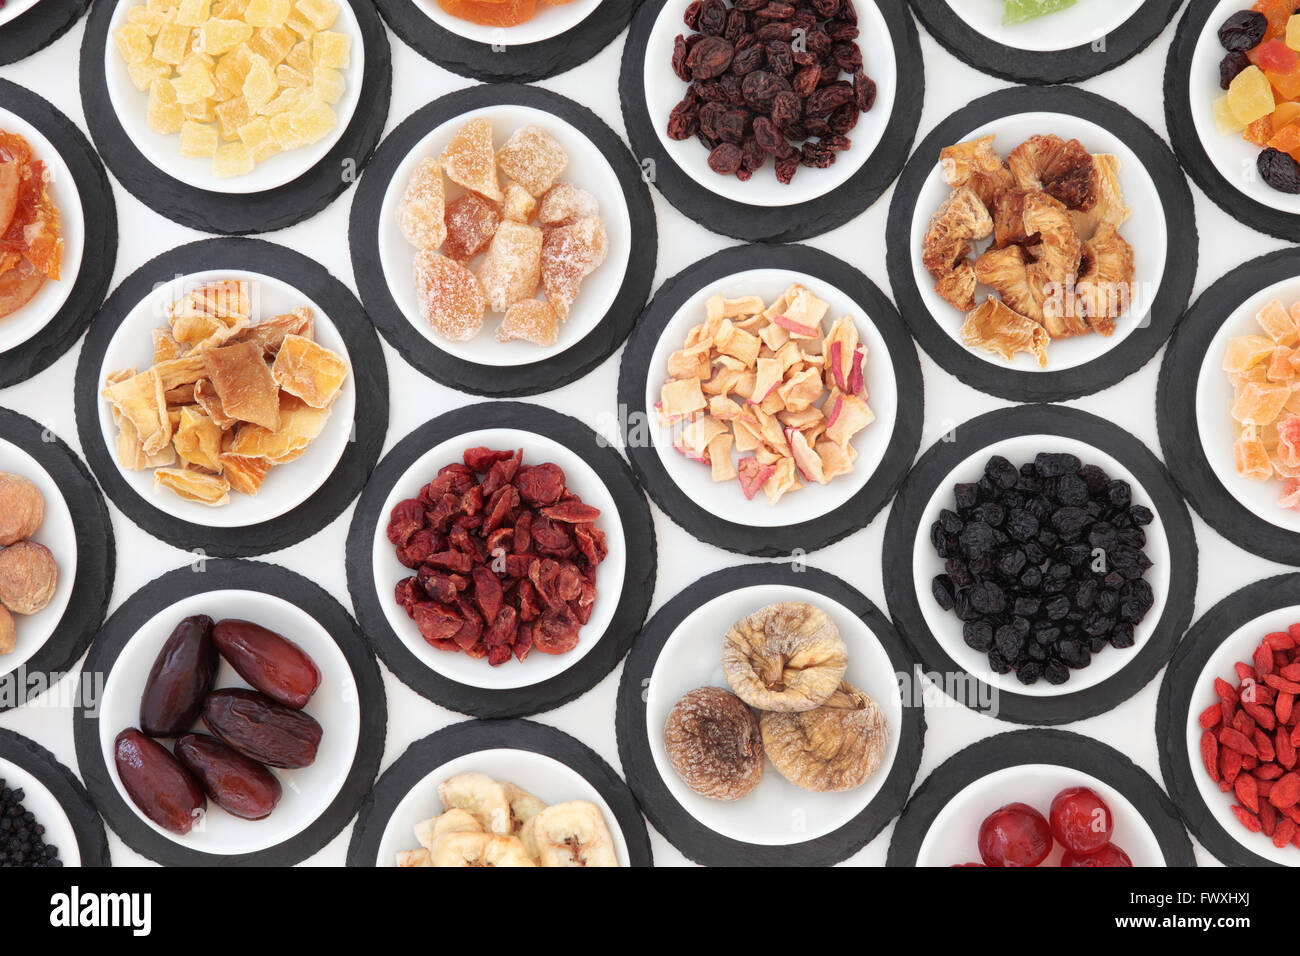 Dried fruit selection in porcelain bowls on slate rounds over white background. - Stock Image